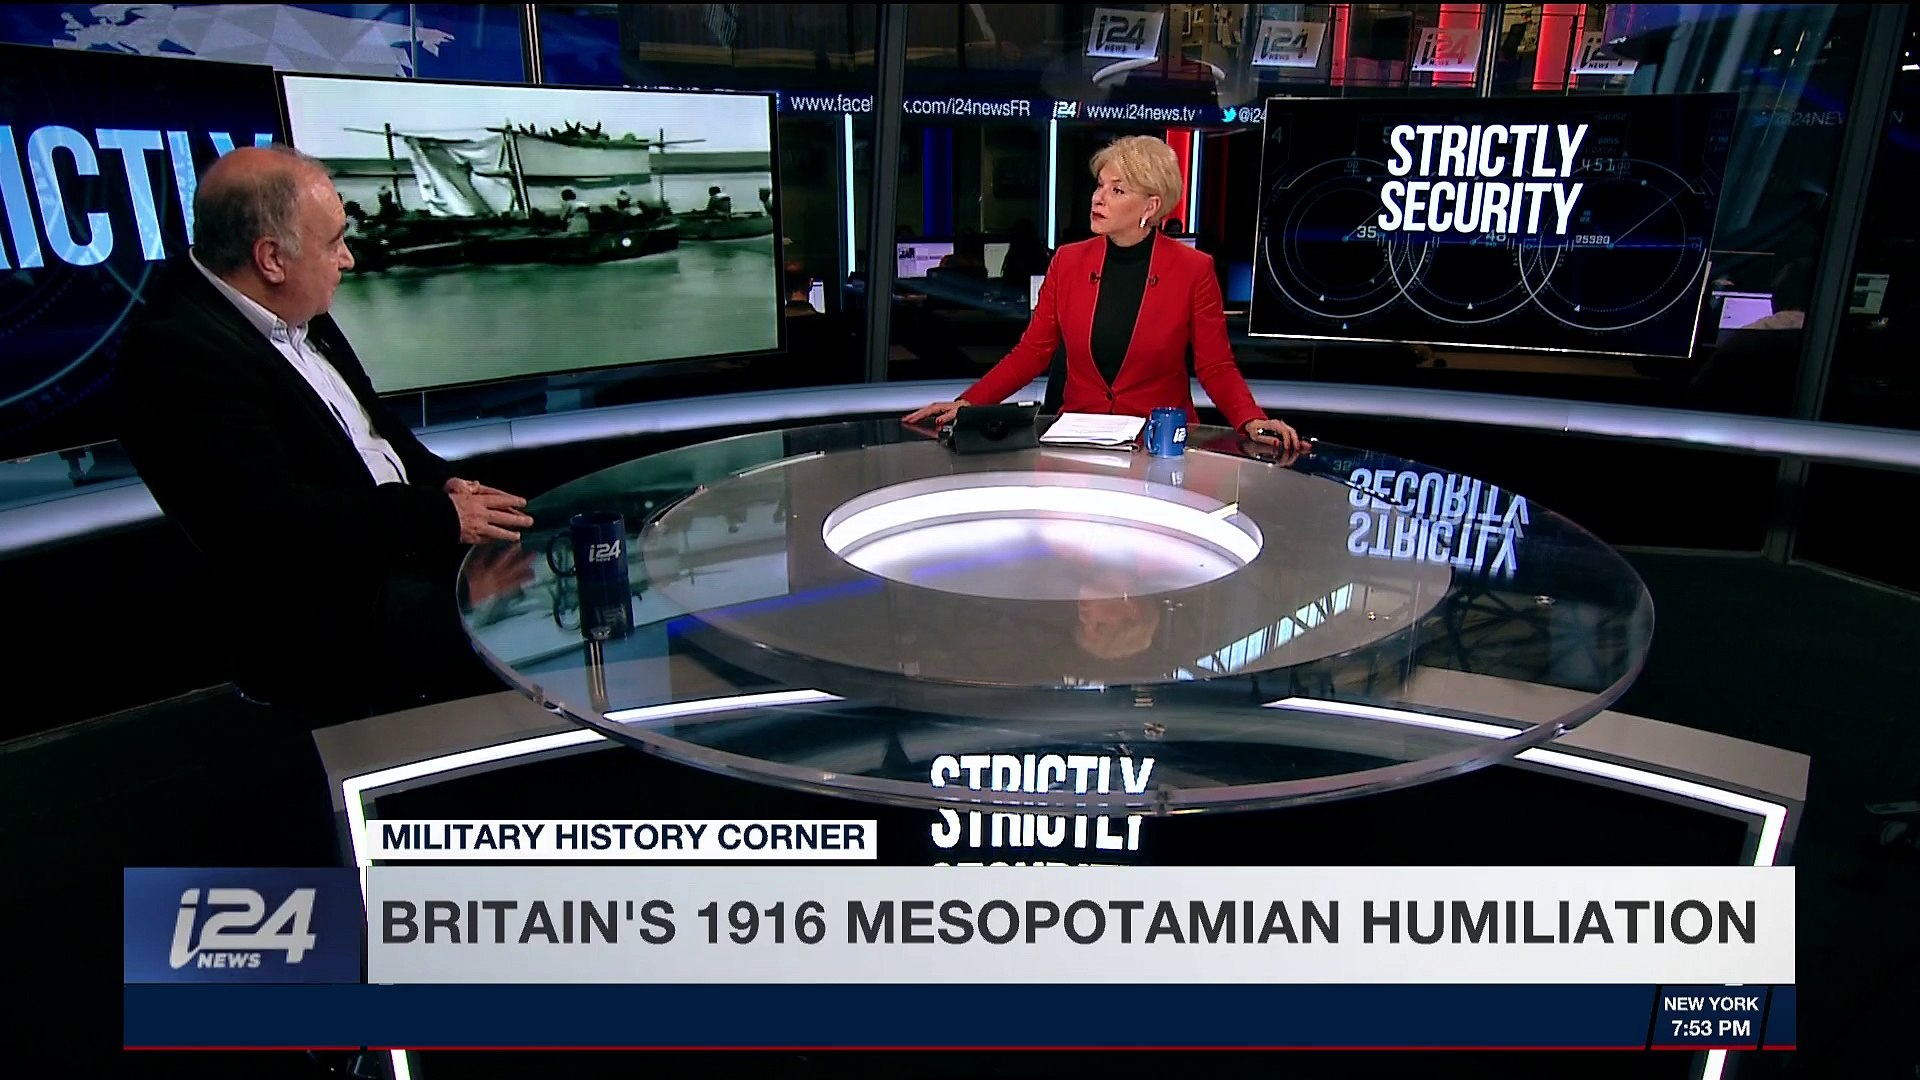 STRICTLY SECURITY | Britain's 1916 Mesopotamian humiliation | Saturday, March 3rd 2018